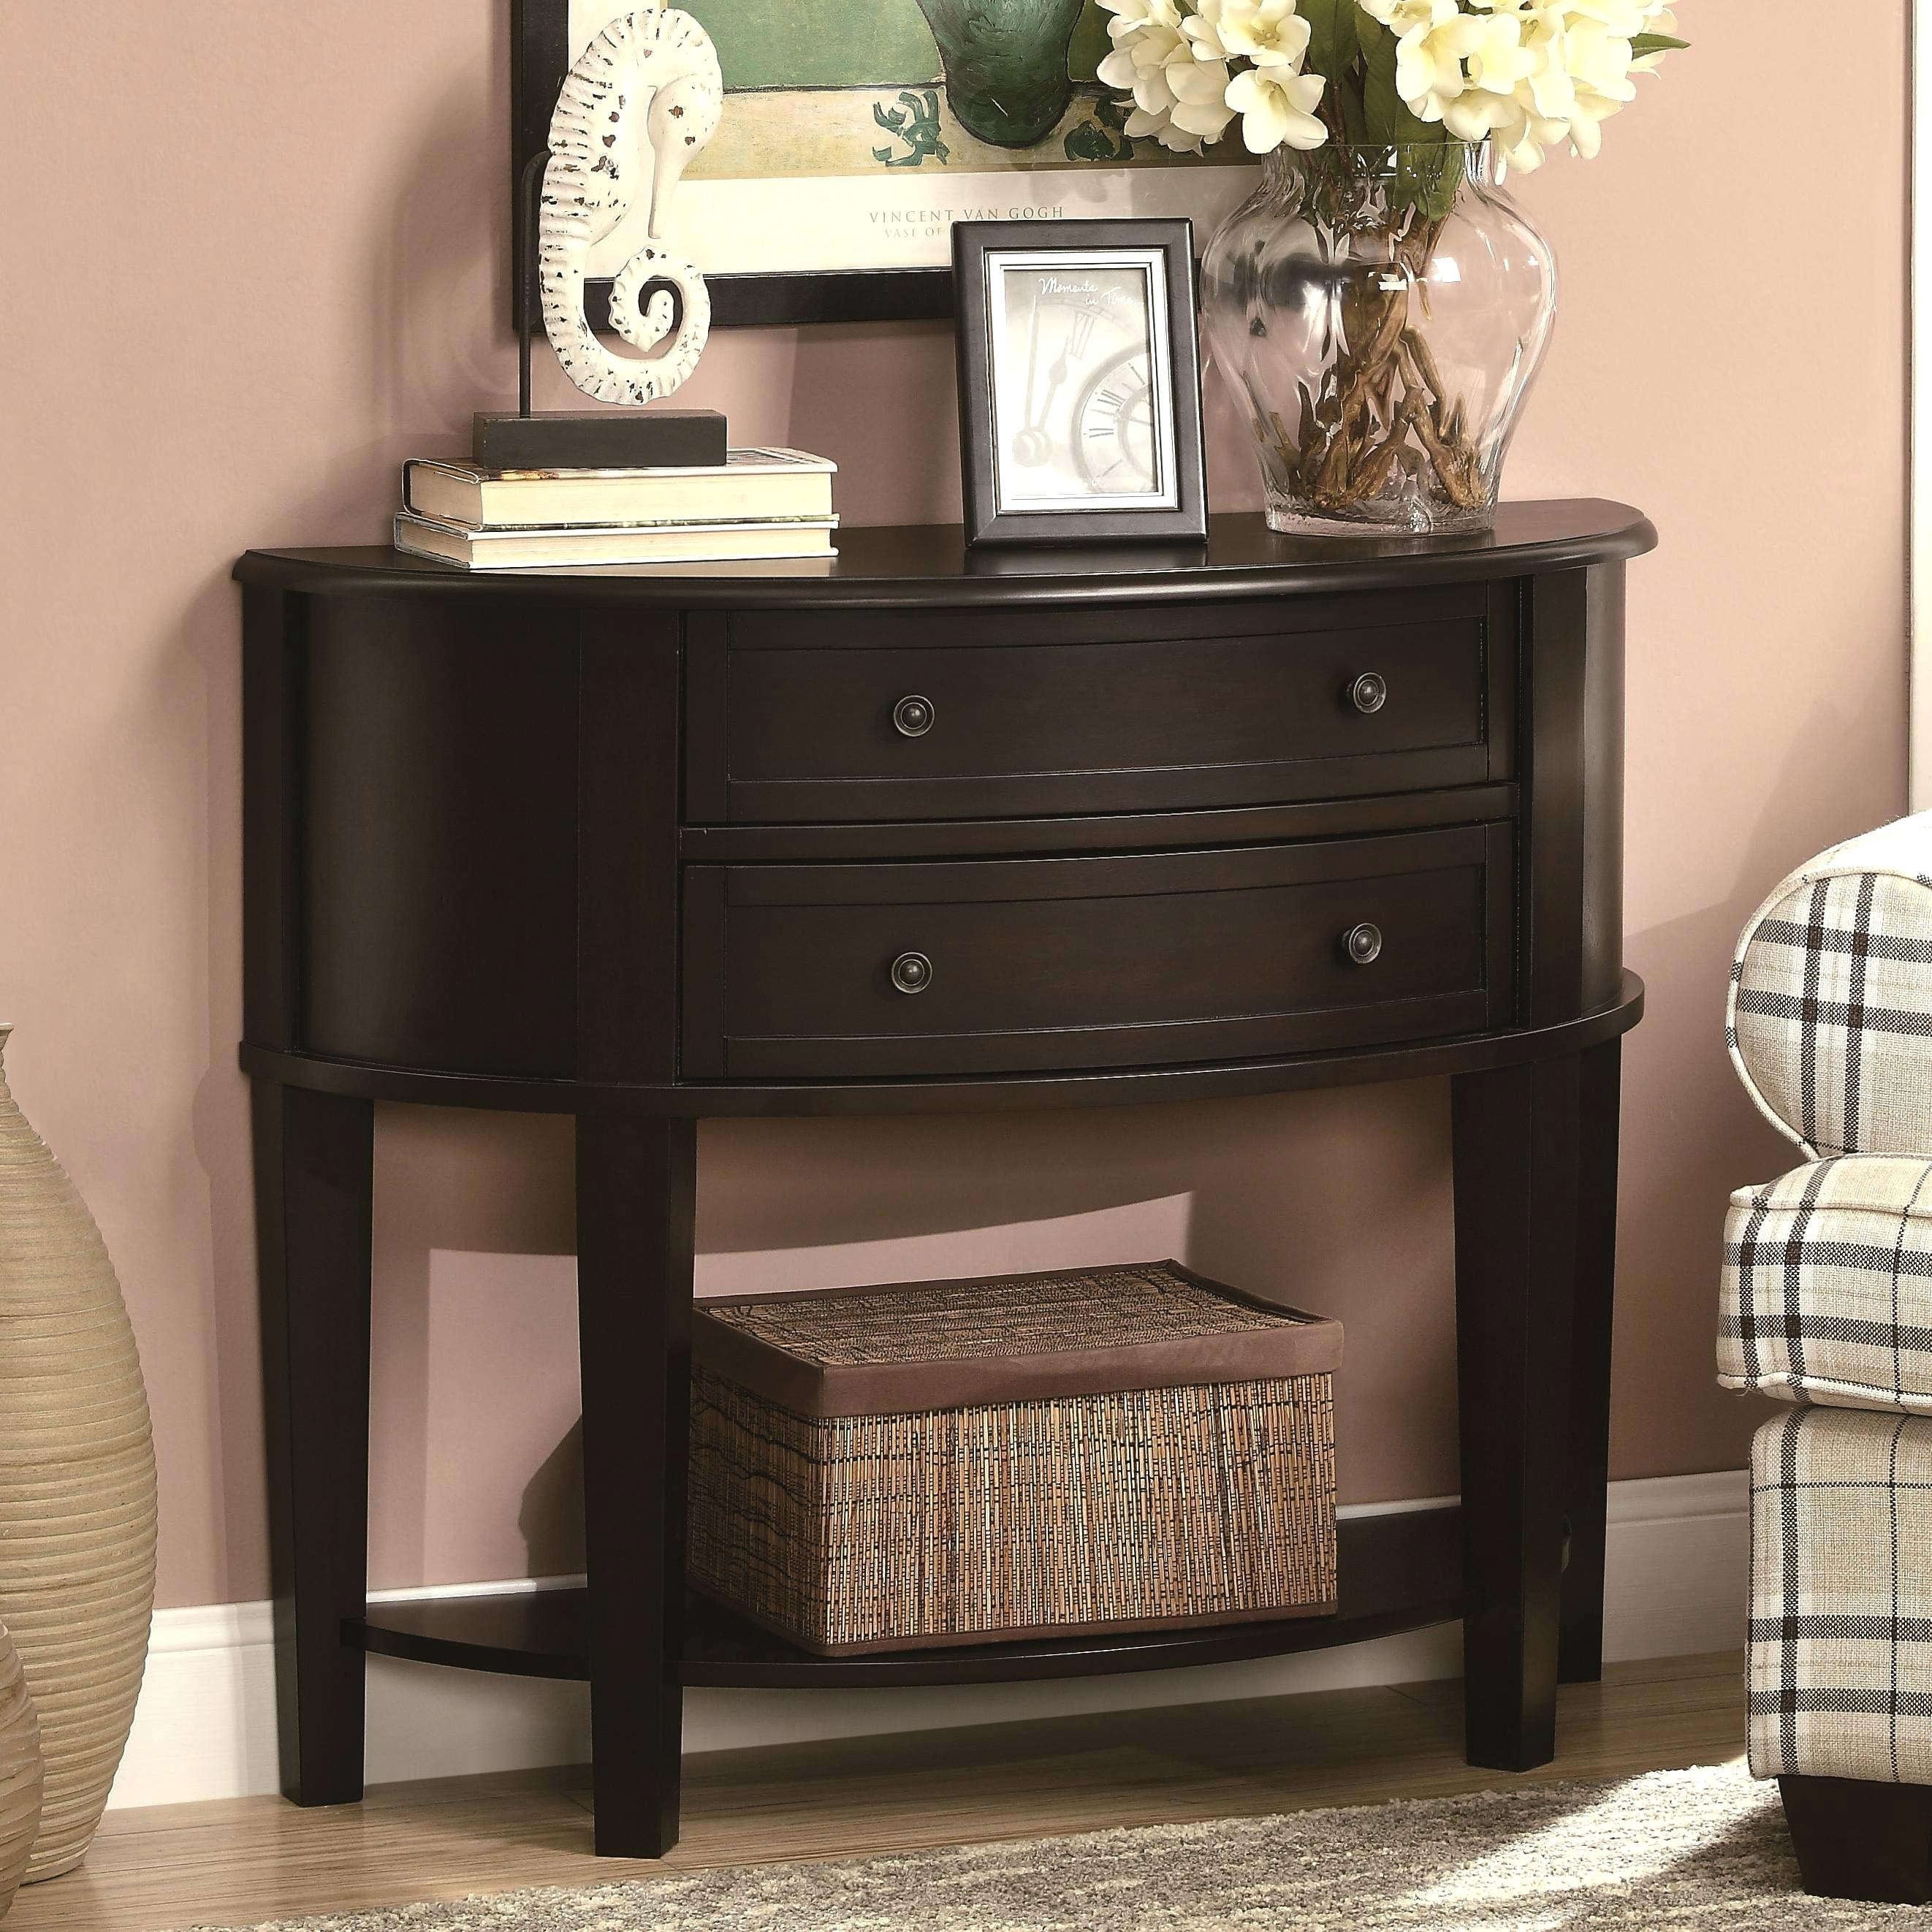 accent table wasserer info coaster tables entry sofa target threshold with drawer pool patio umbrellas outdoor daybeds clearance metal drum storage magnussen glass coffee mirror